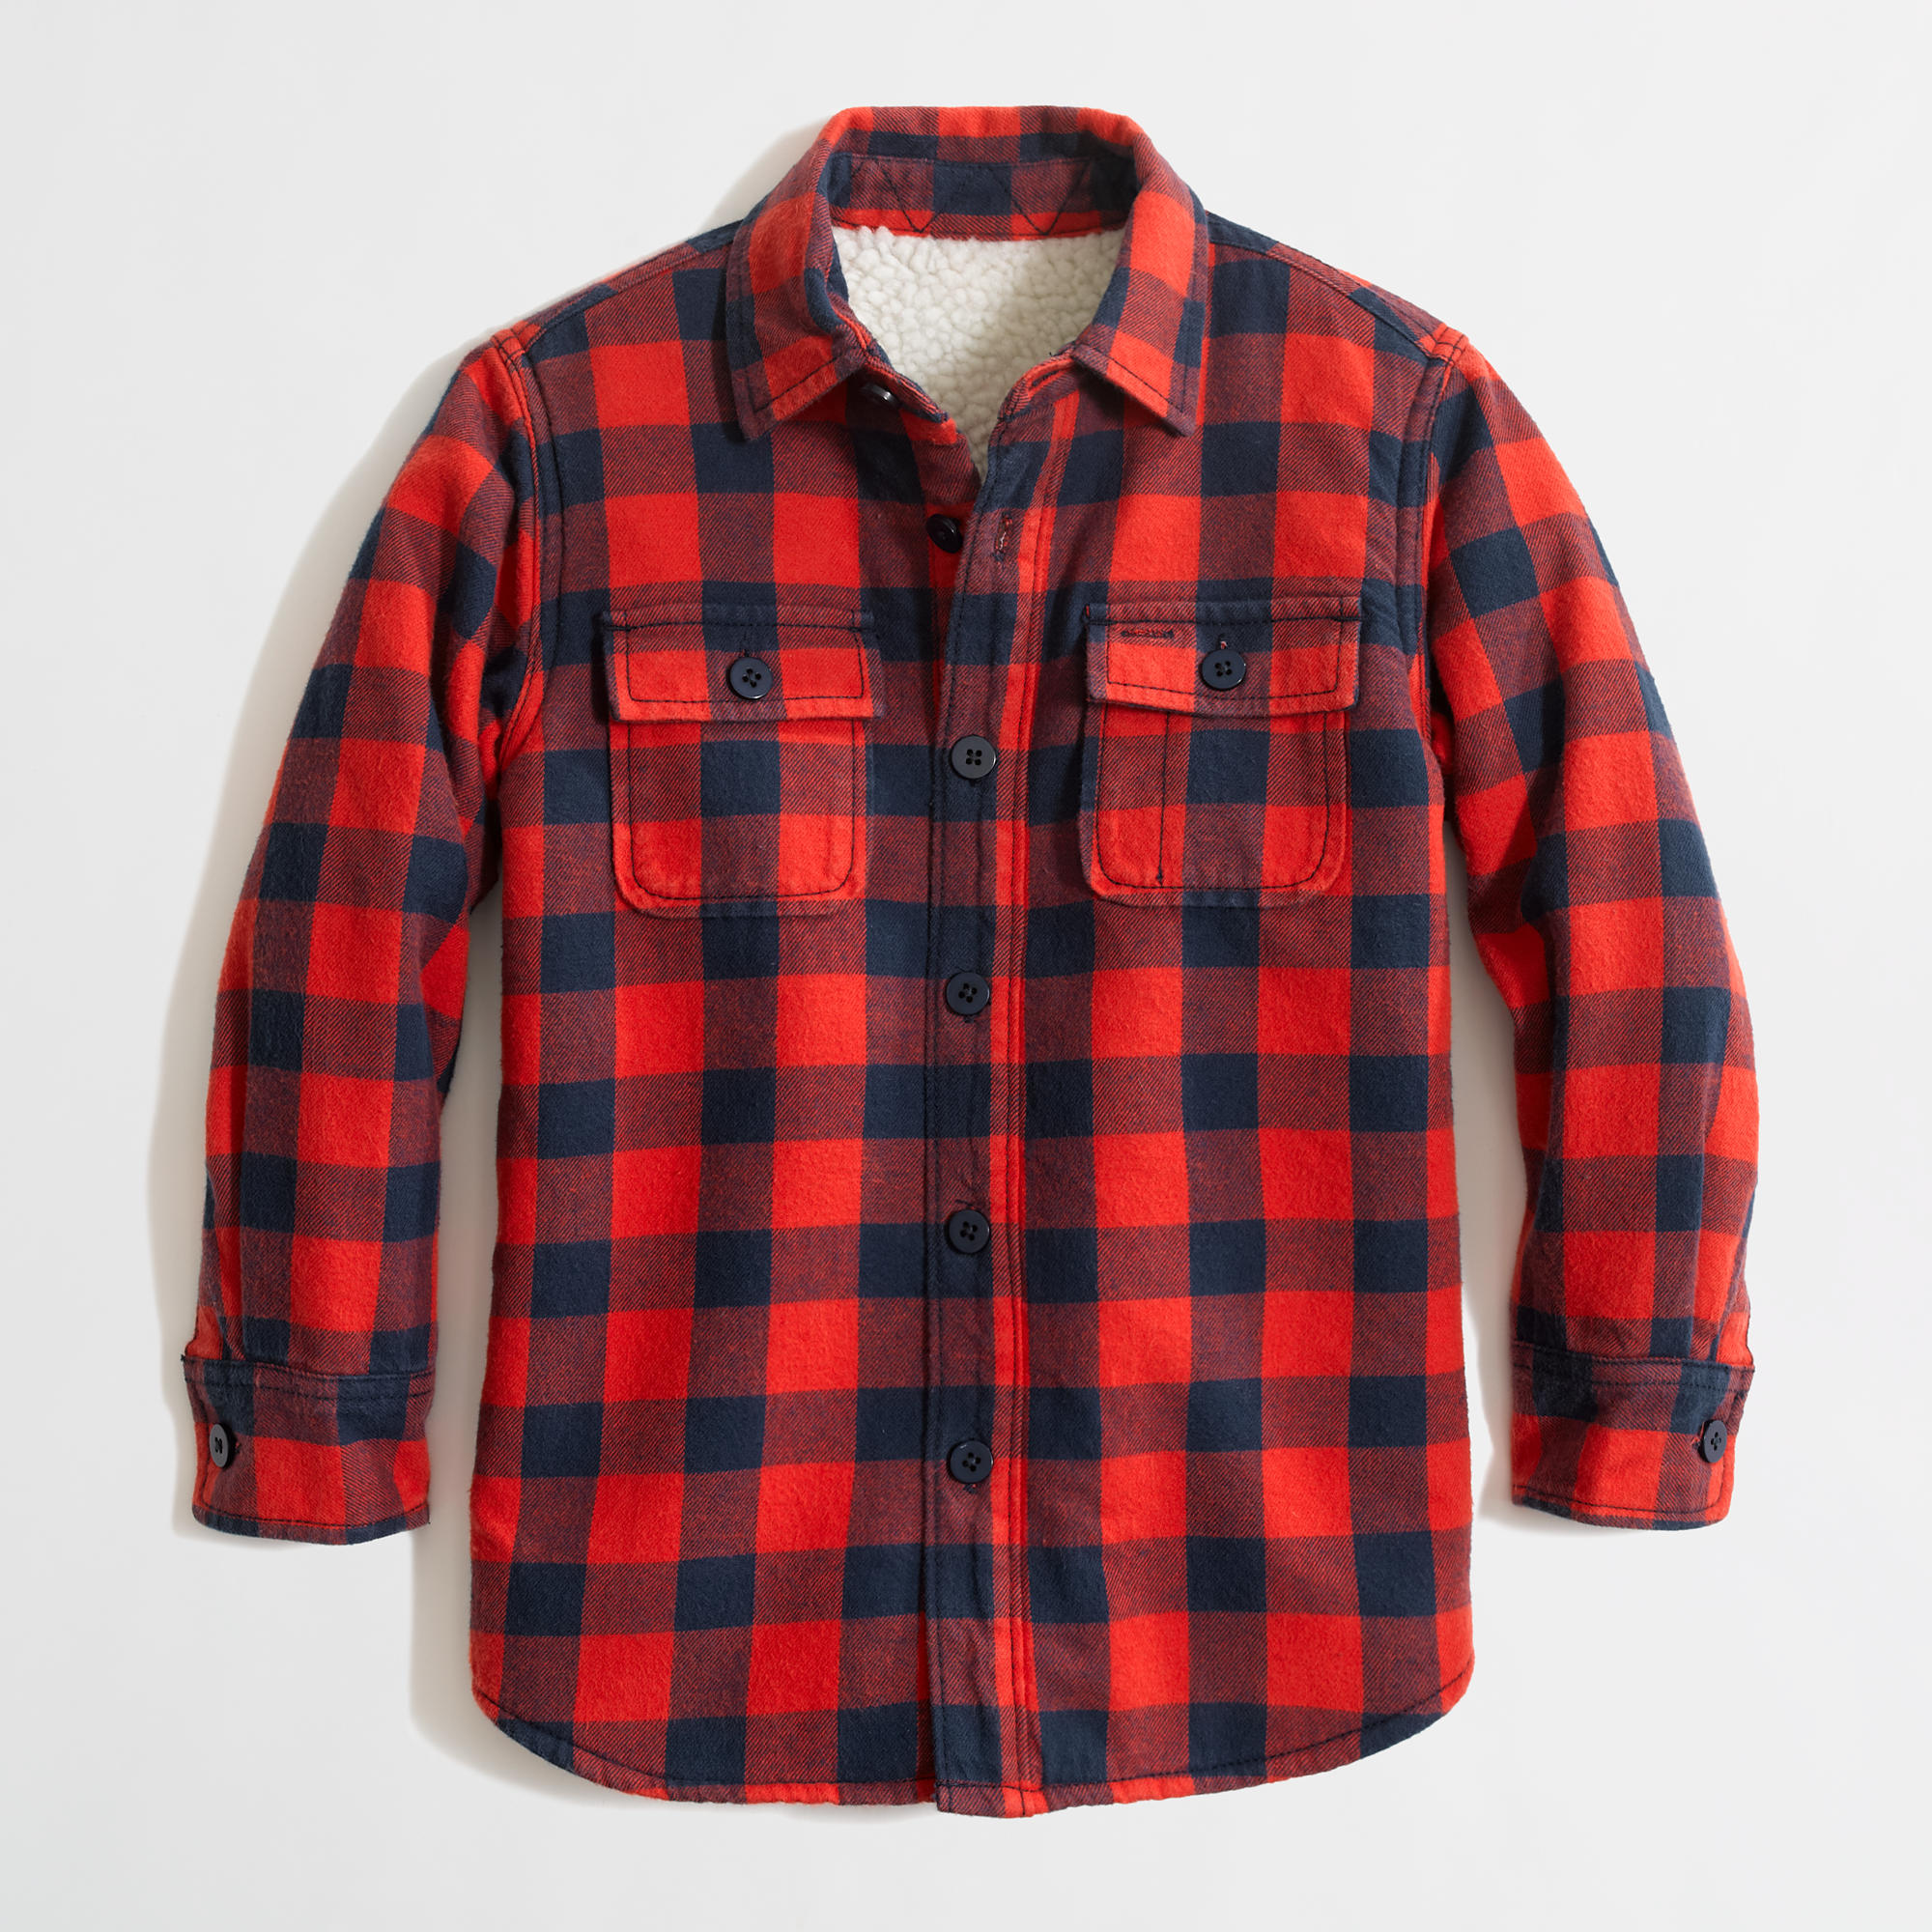 Factory Boys 39 Sherpa Lined Flannel Jacket Factory